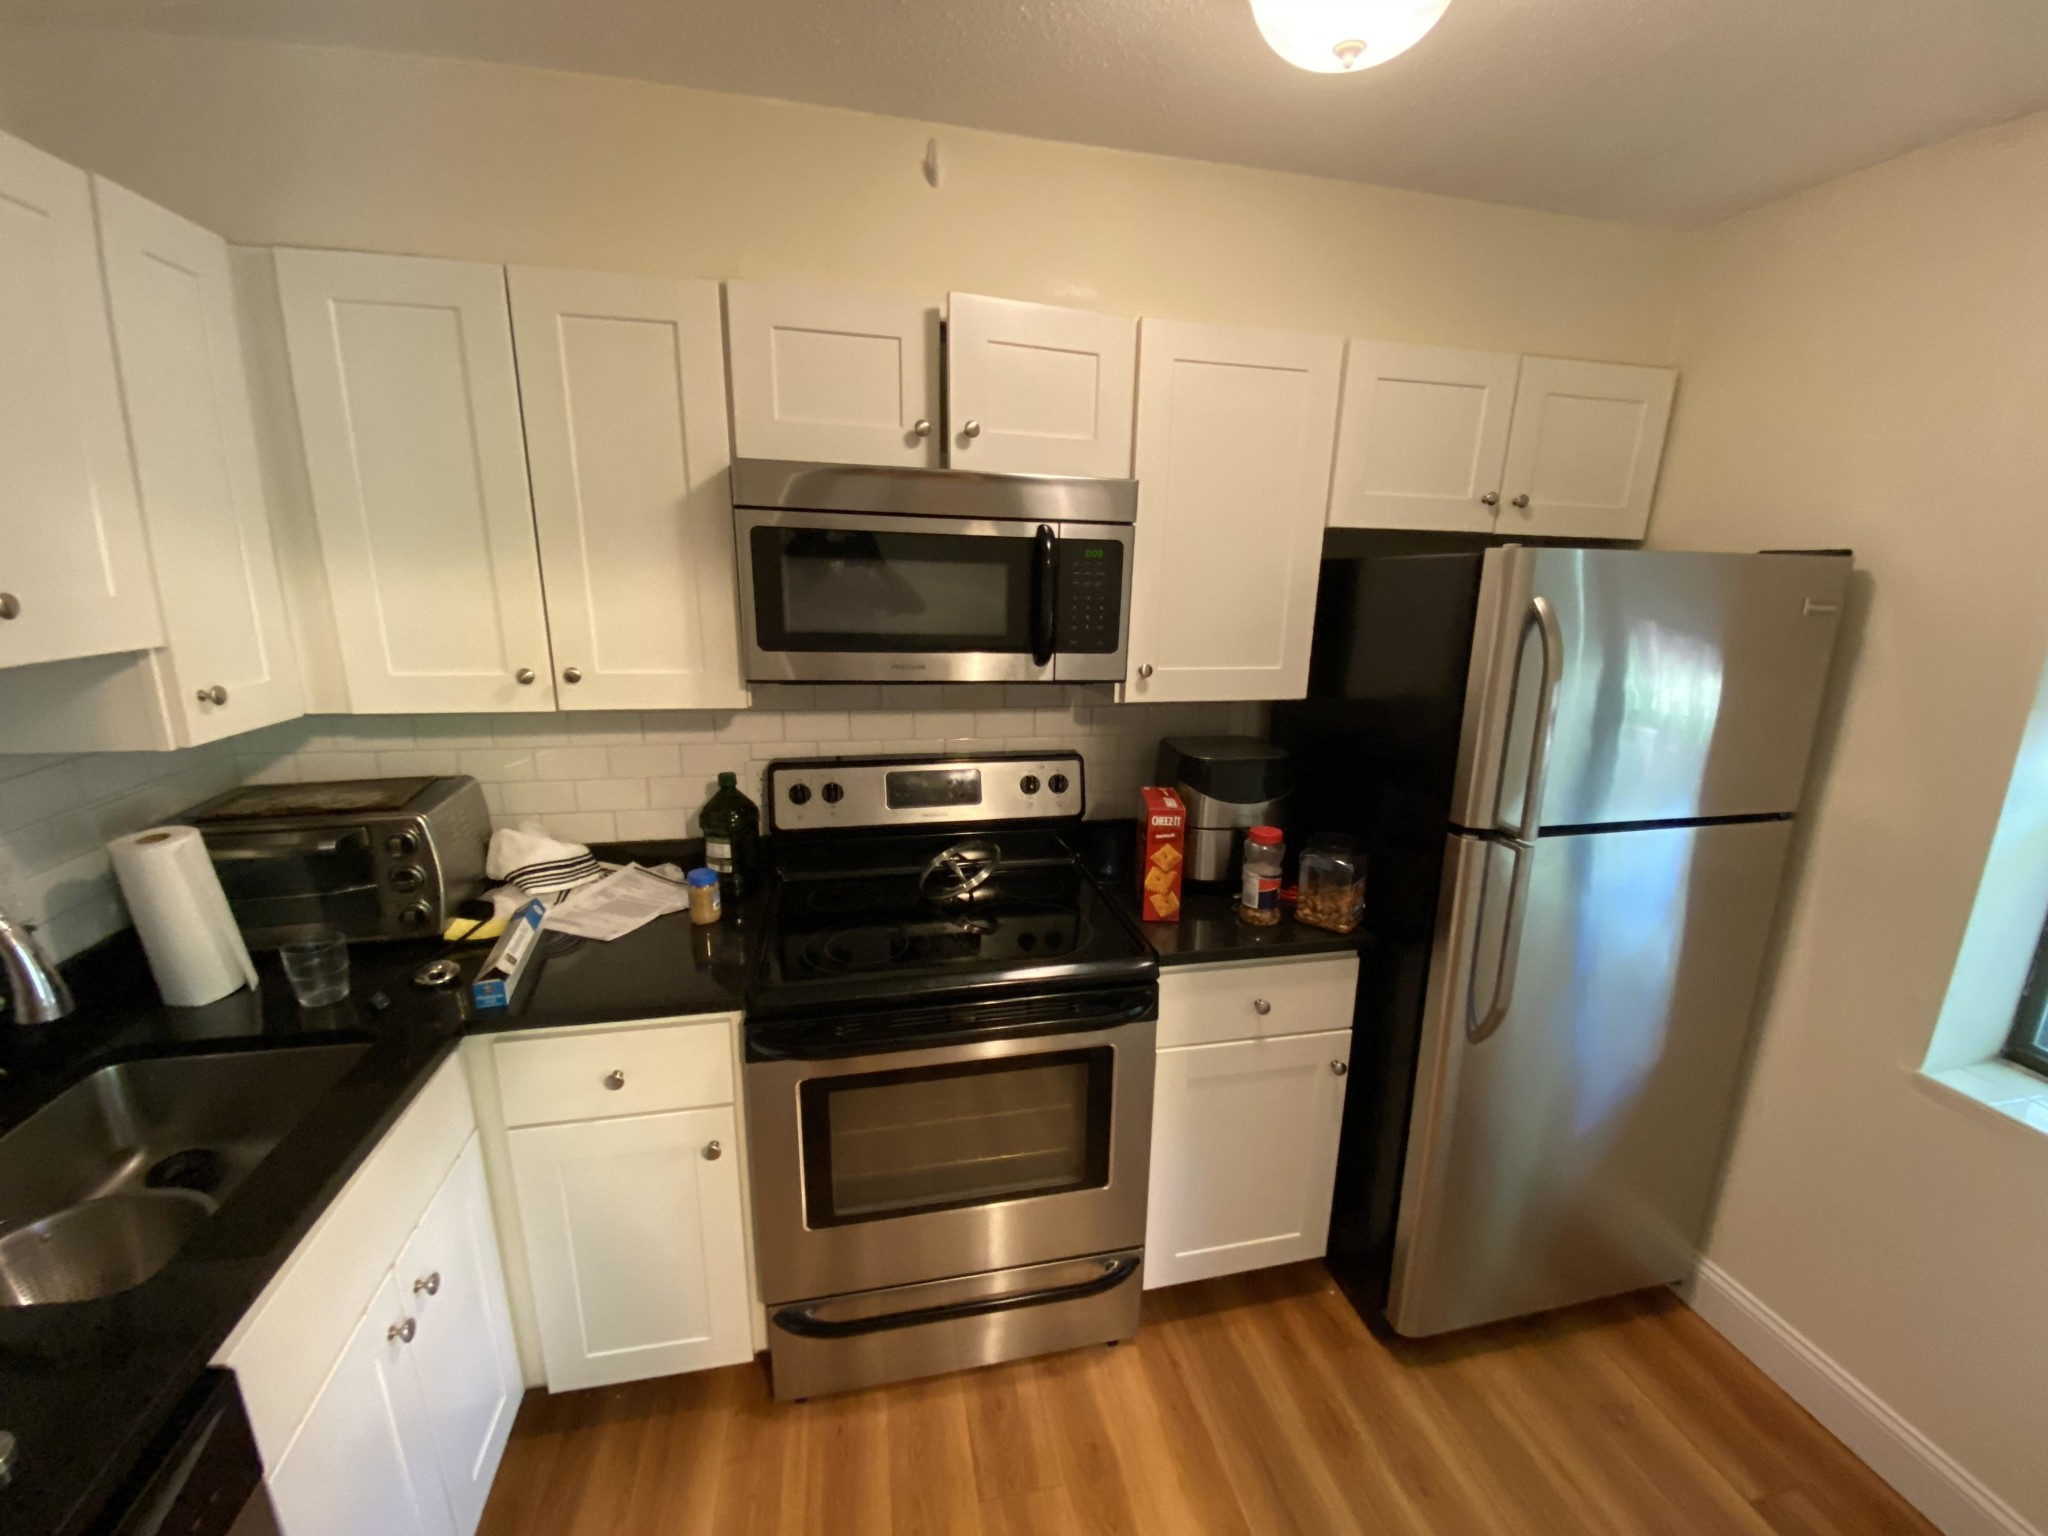 Photos of apartment on Tremont St.,Boston MA 02135